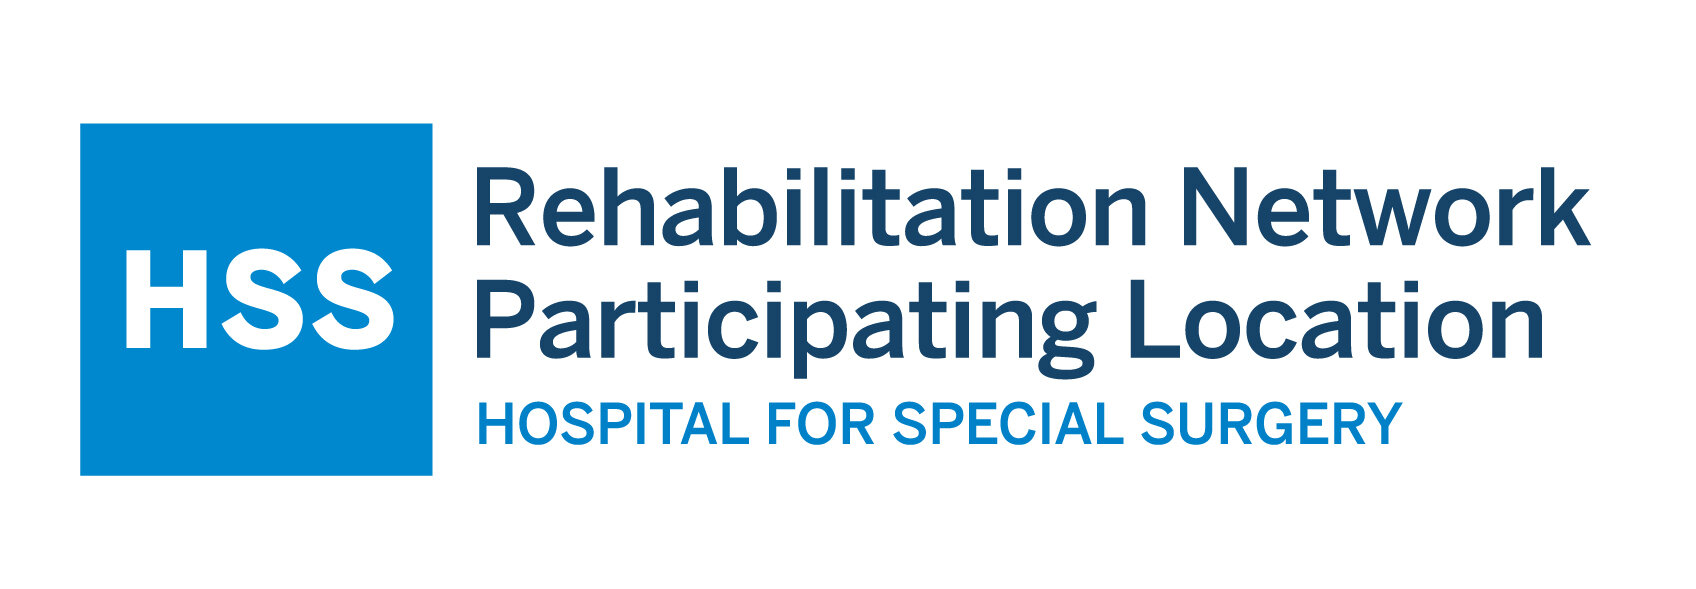 HSS_Rehabilitation-Network_Participating_Location_2018-01.jpg